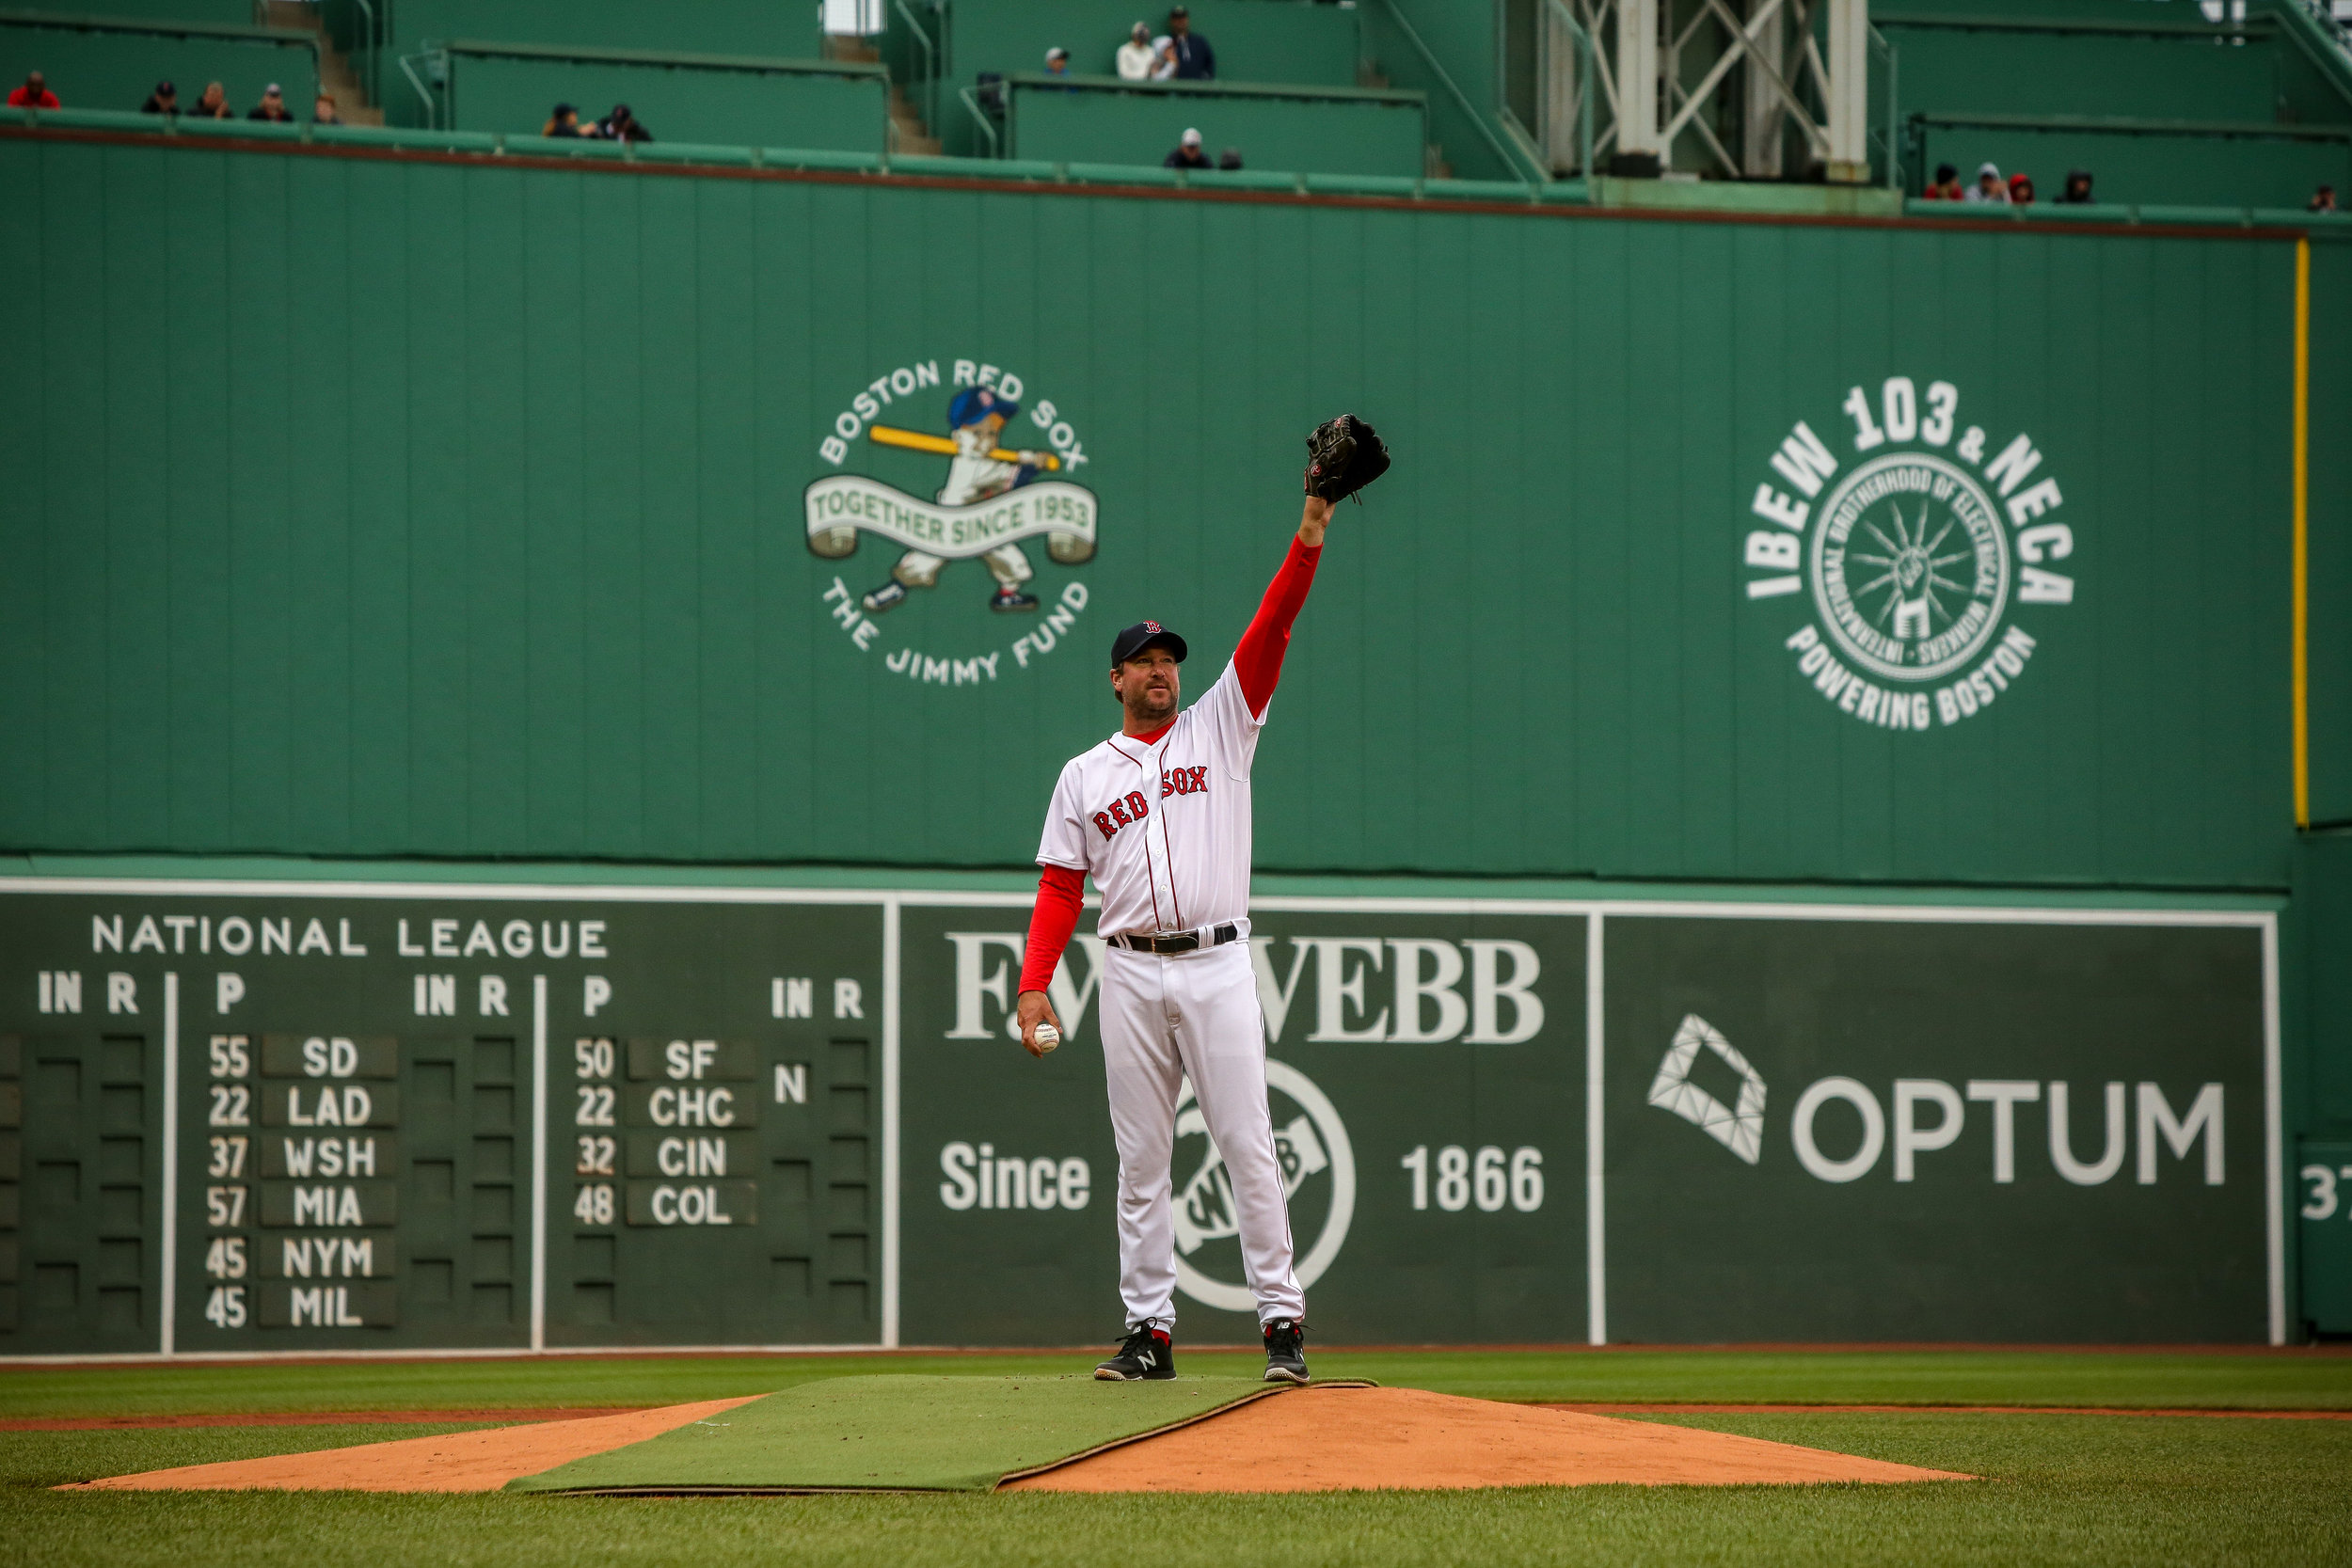 Pitcher Derek Lowe waves to the fans of Fenway Park at the 2018 Red Sox Alumni Game.